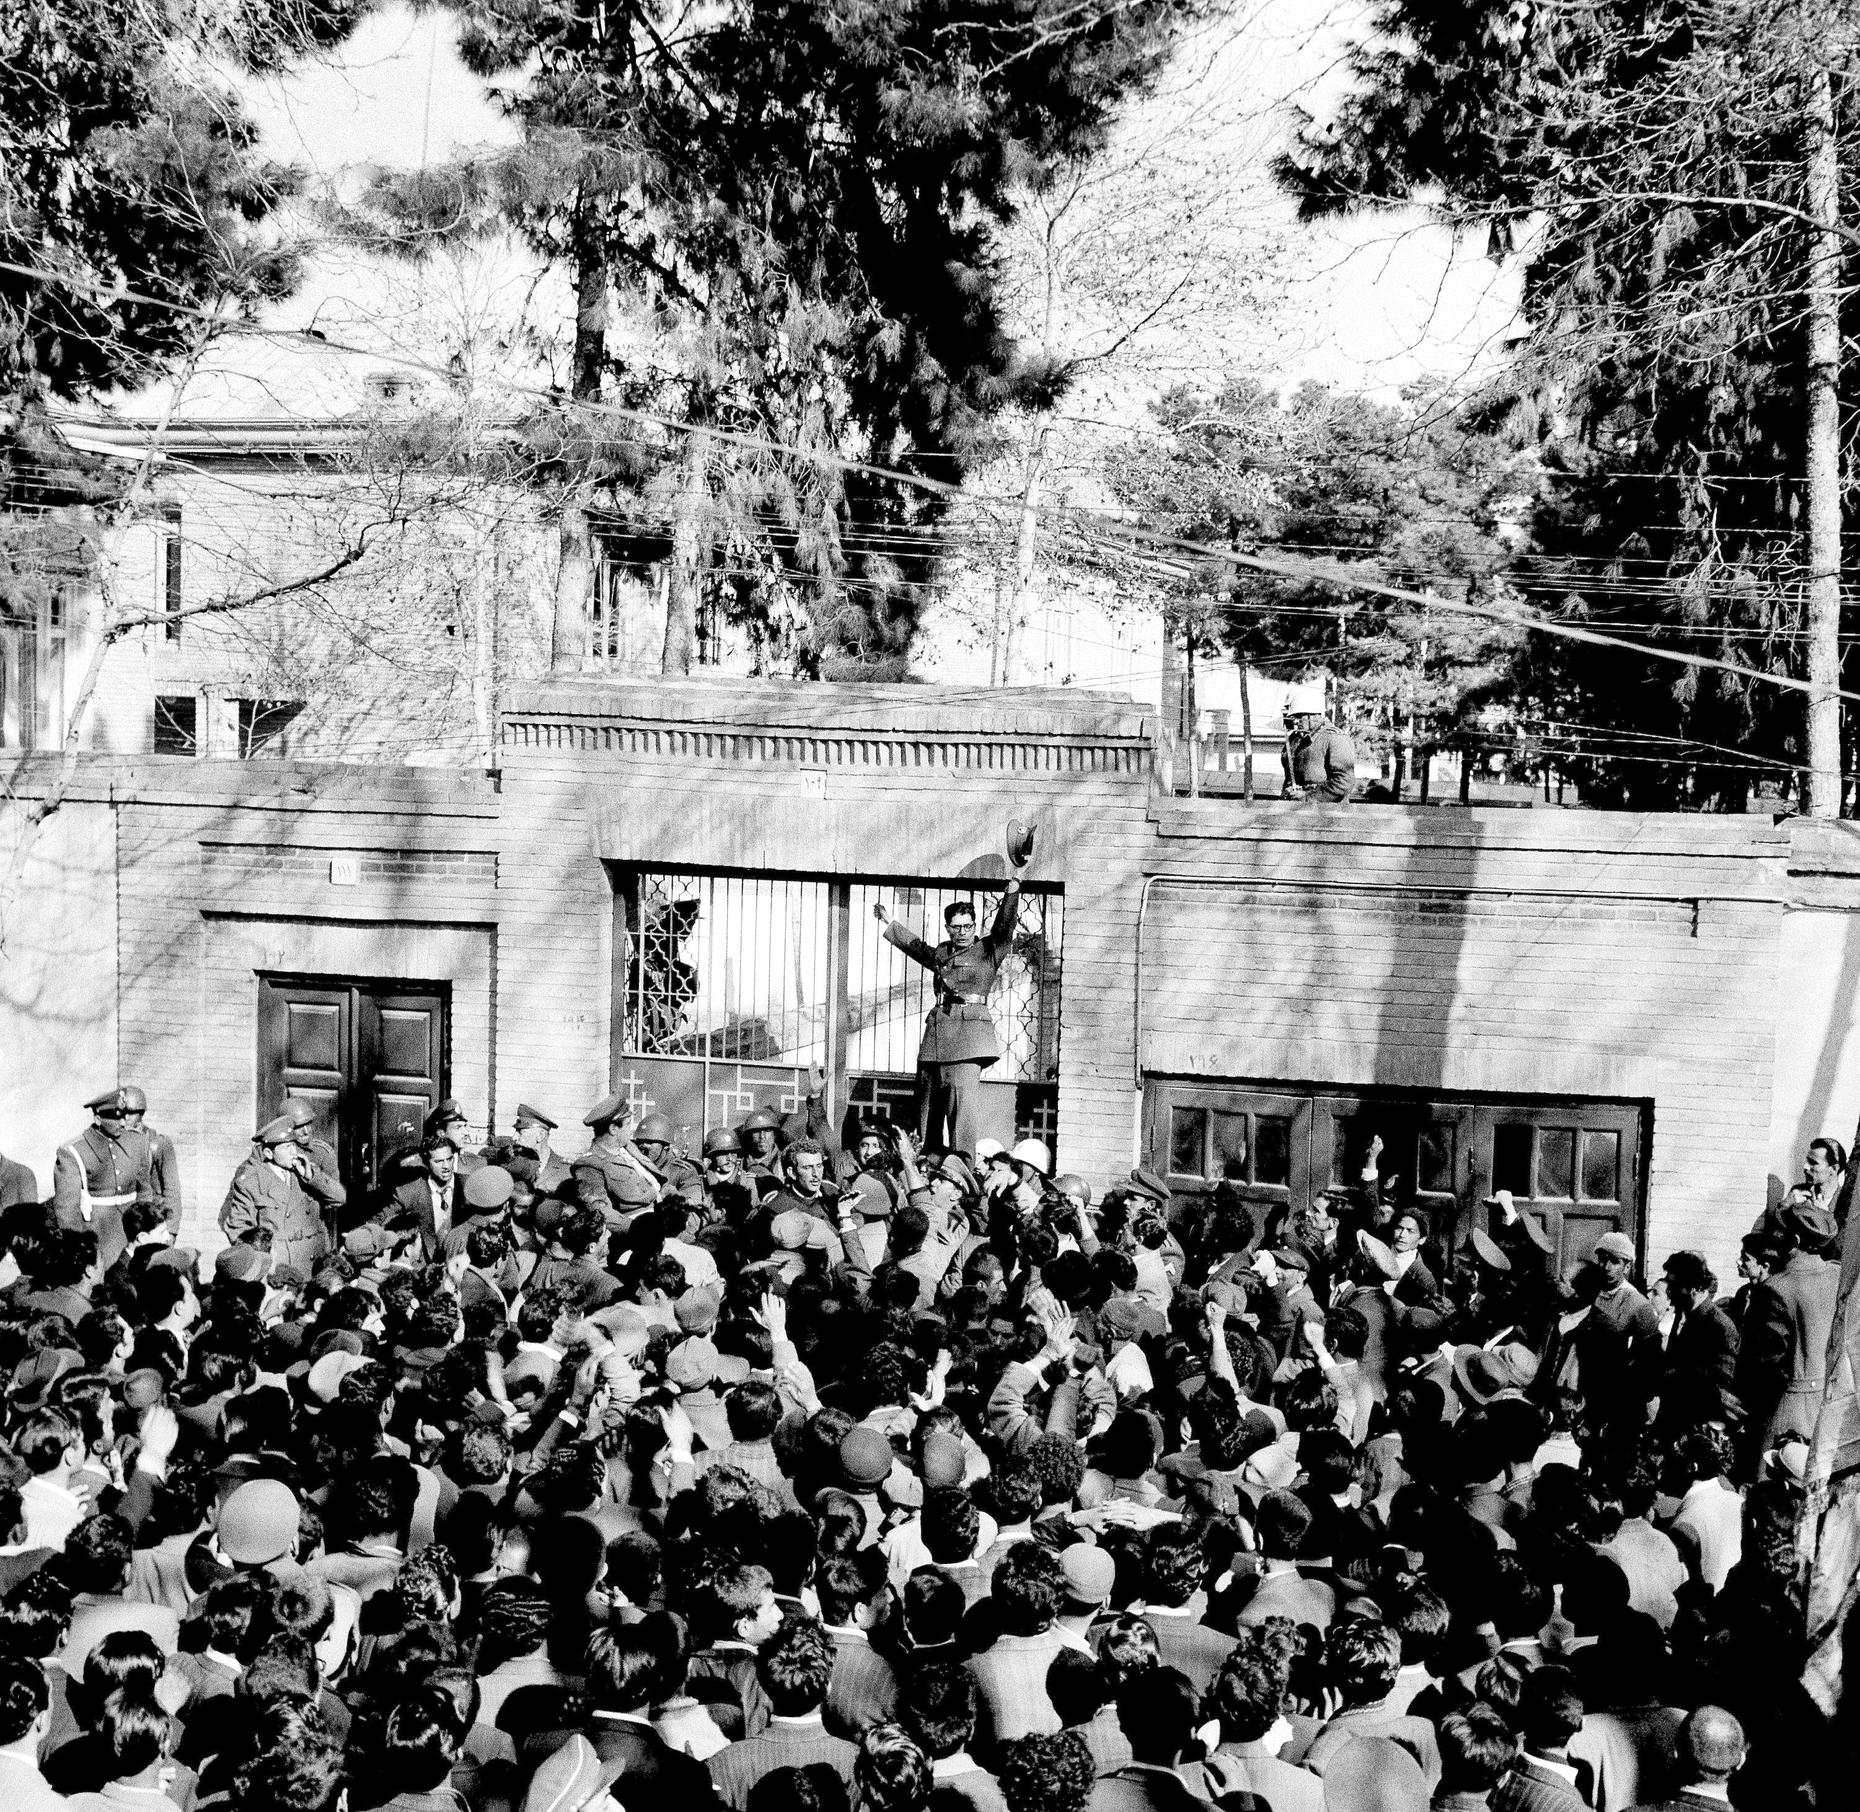 an examination of the involvement of the united states in the 1953 iranian coup He was deposed in the 1953 iranian coup d  ministry of industries and mines exploit mines without the involvement of the  the united states,.